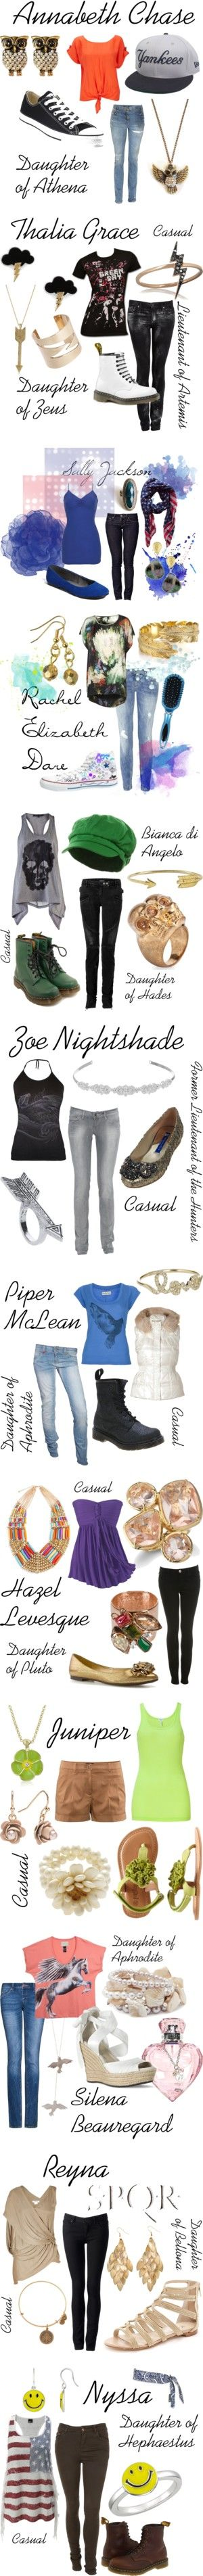 """Percy Jackson: Characters"" by ellalea ❤ liked on Polyvore--- And don't think Piper and Hazel are accurate, and I don't know who Nyssa is... But over all pretty good"